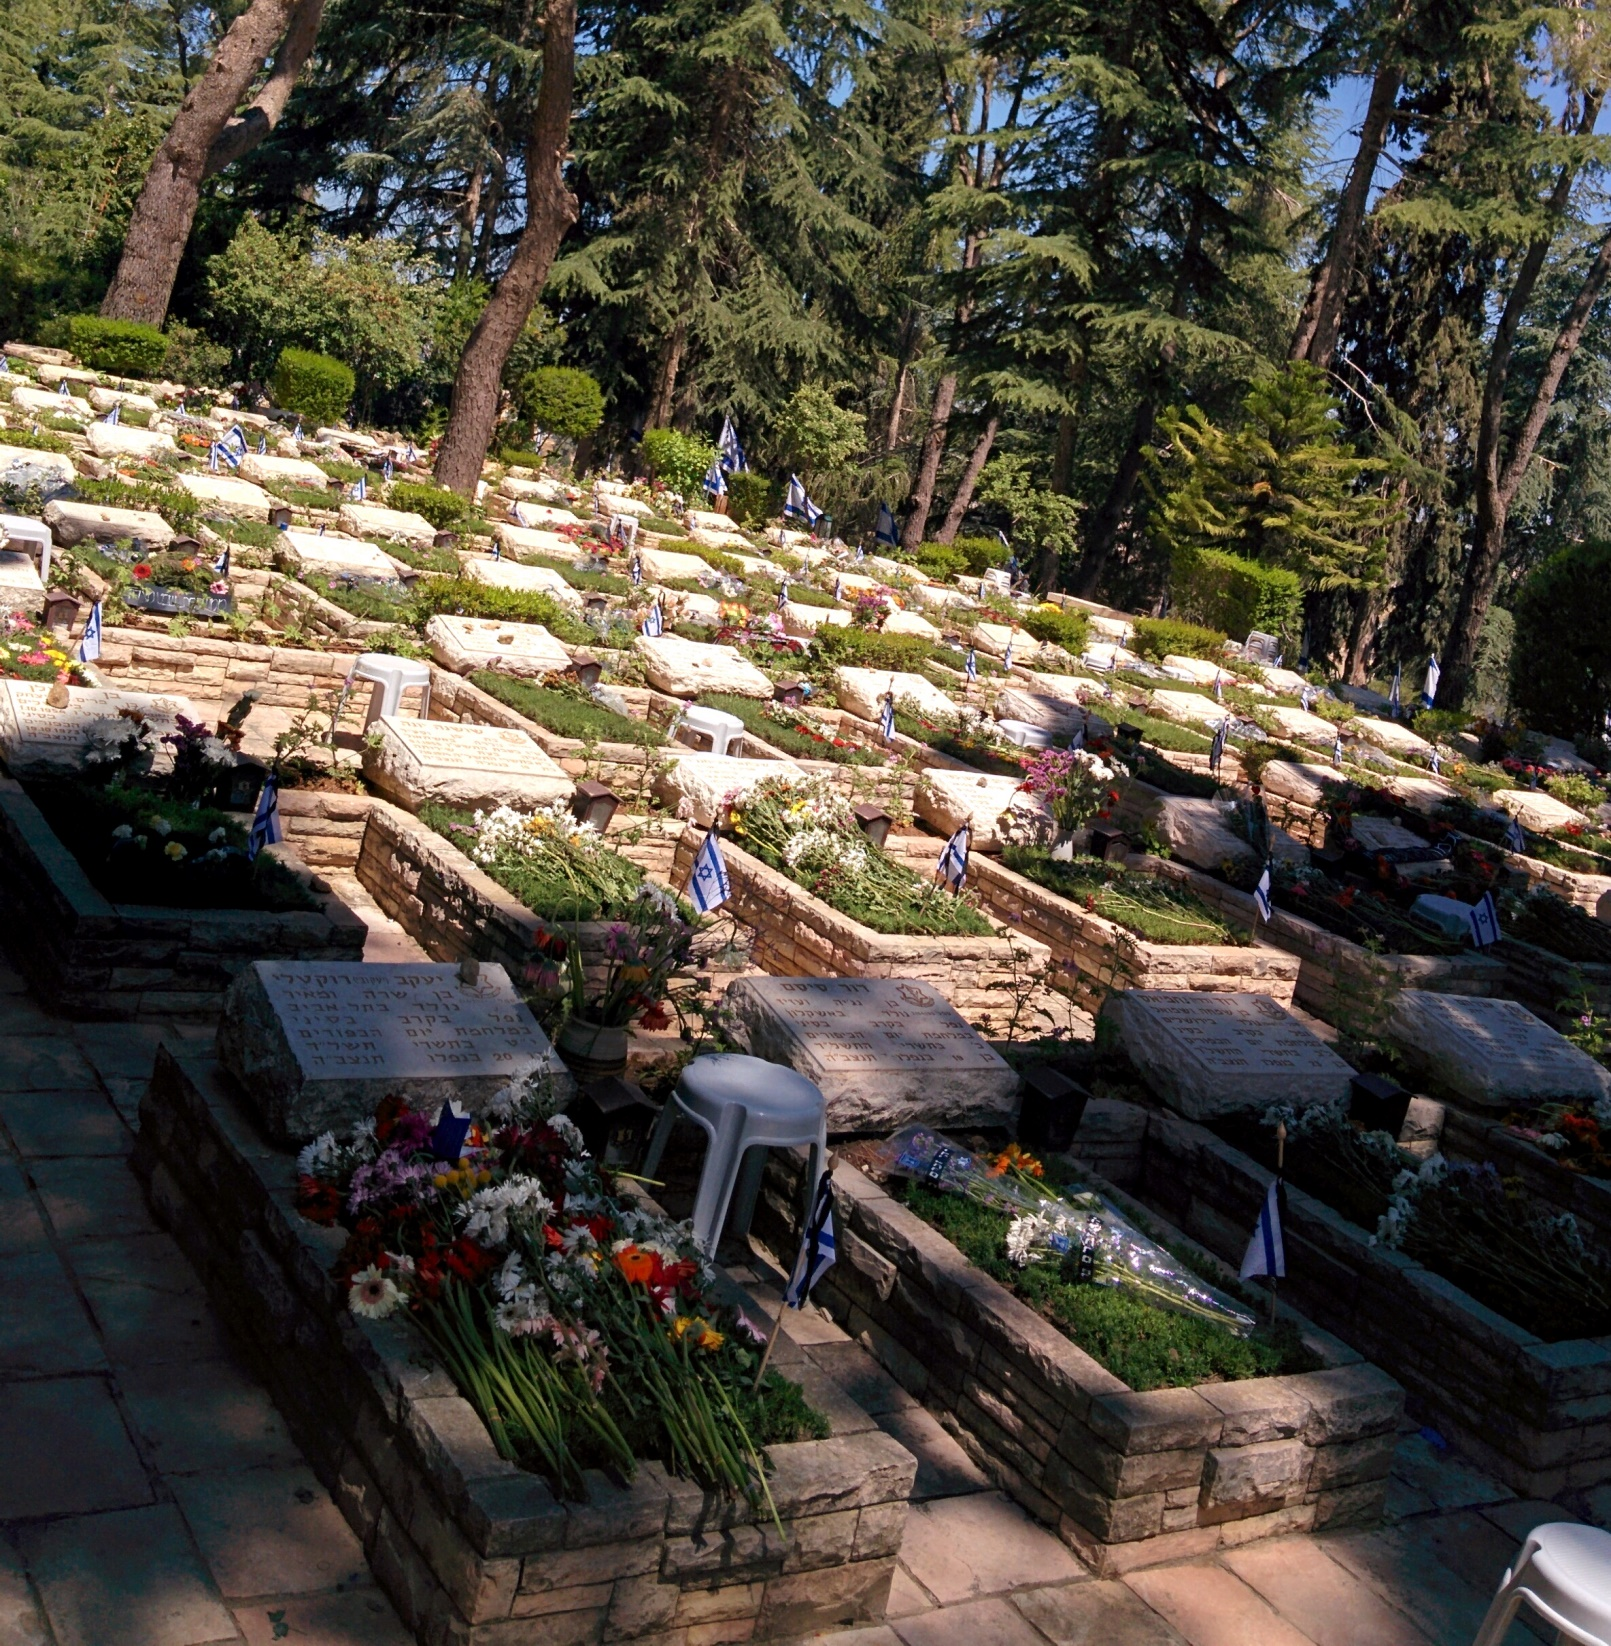 Graves in Mount Herzl's military cemetery. Photo by Abigail Klein Leichman